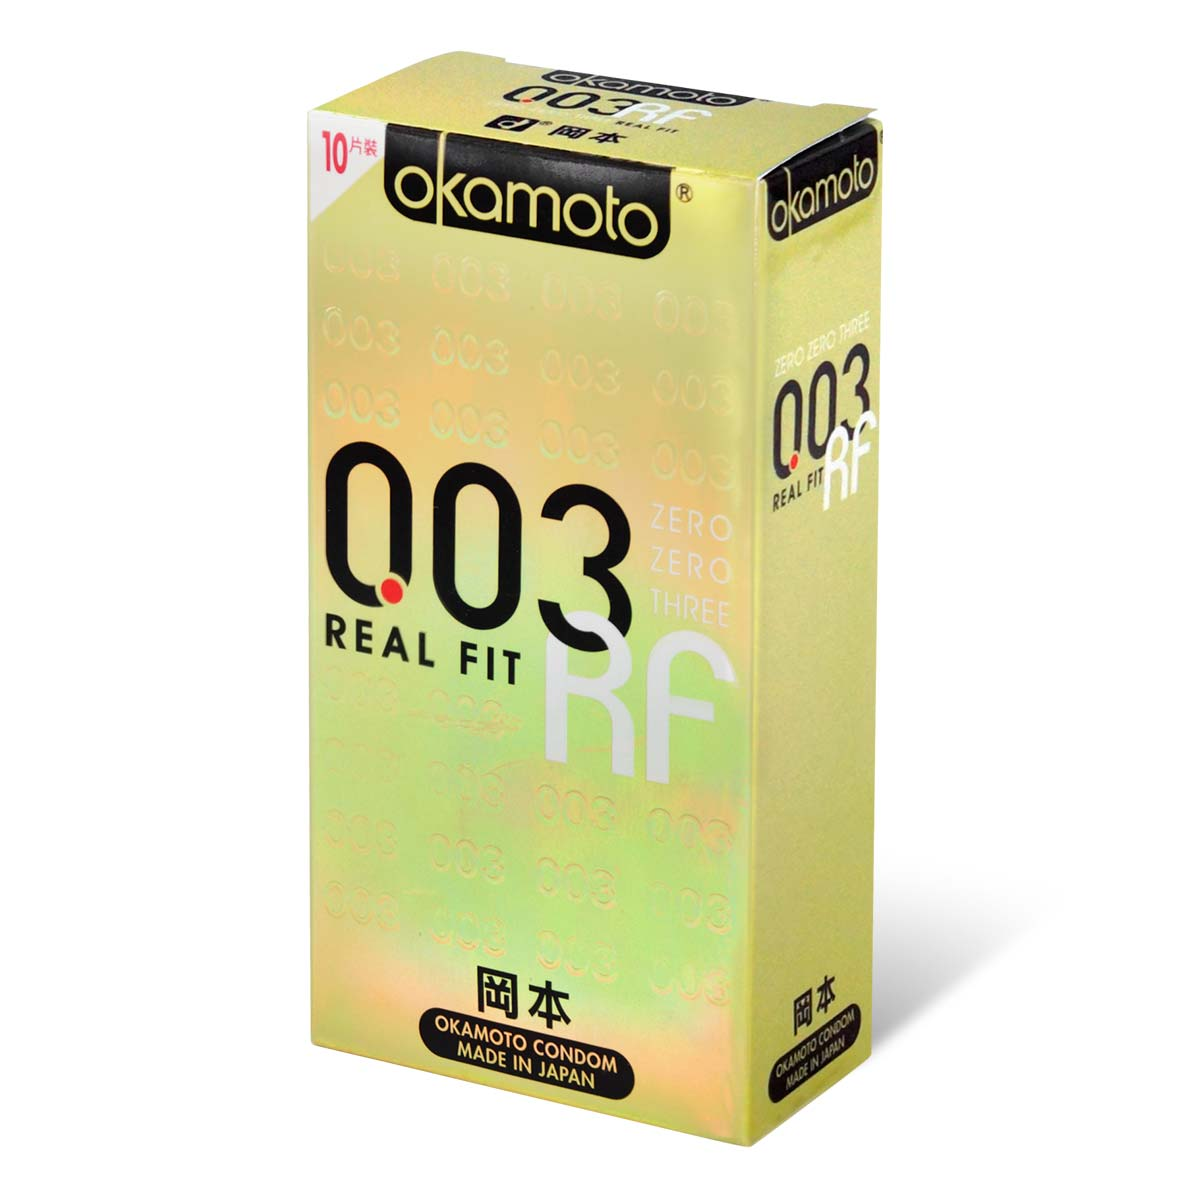 Okamoto 0.03 Real Fit 10's Pack Latex Condom